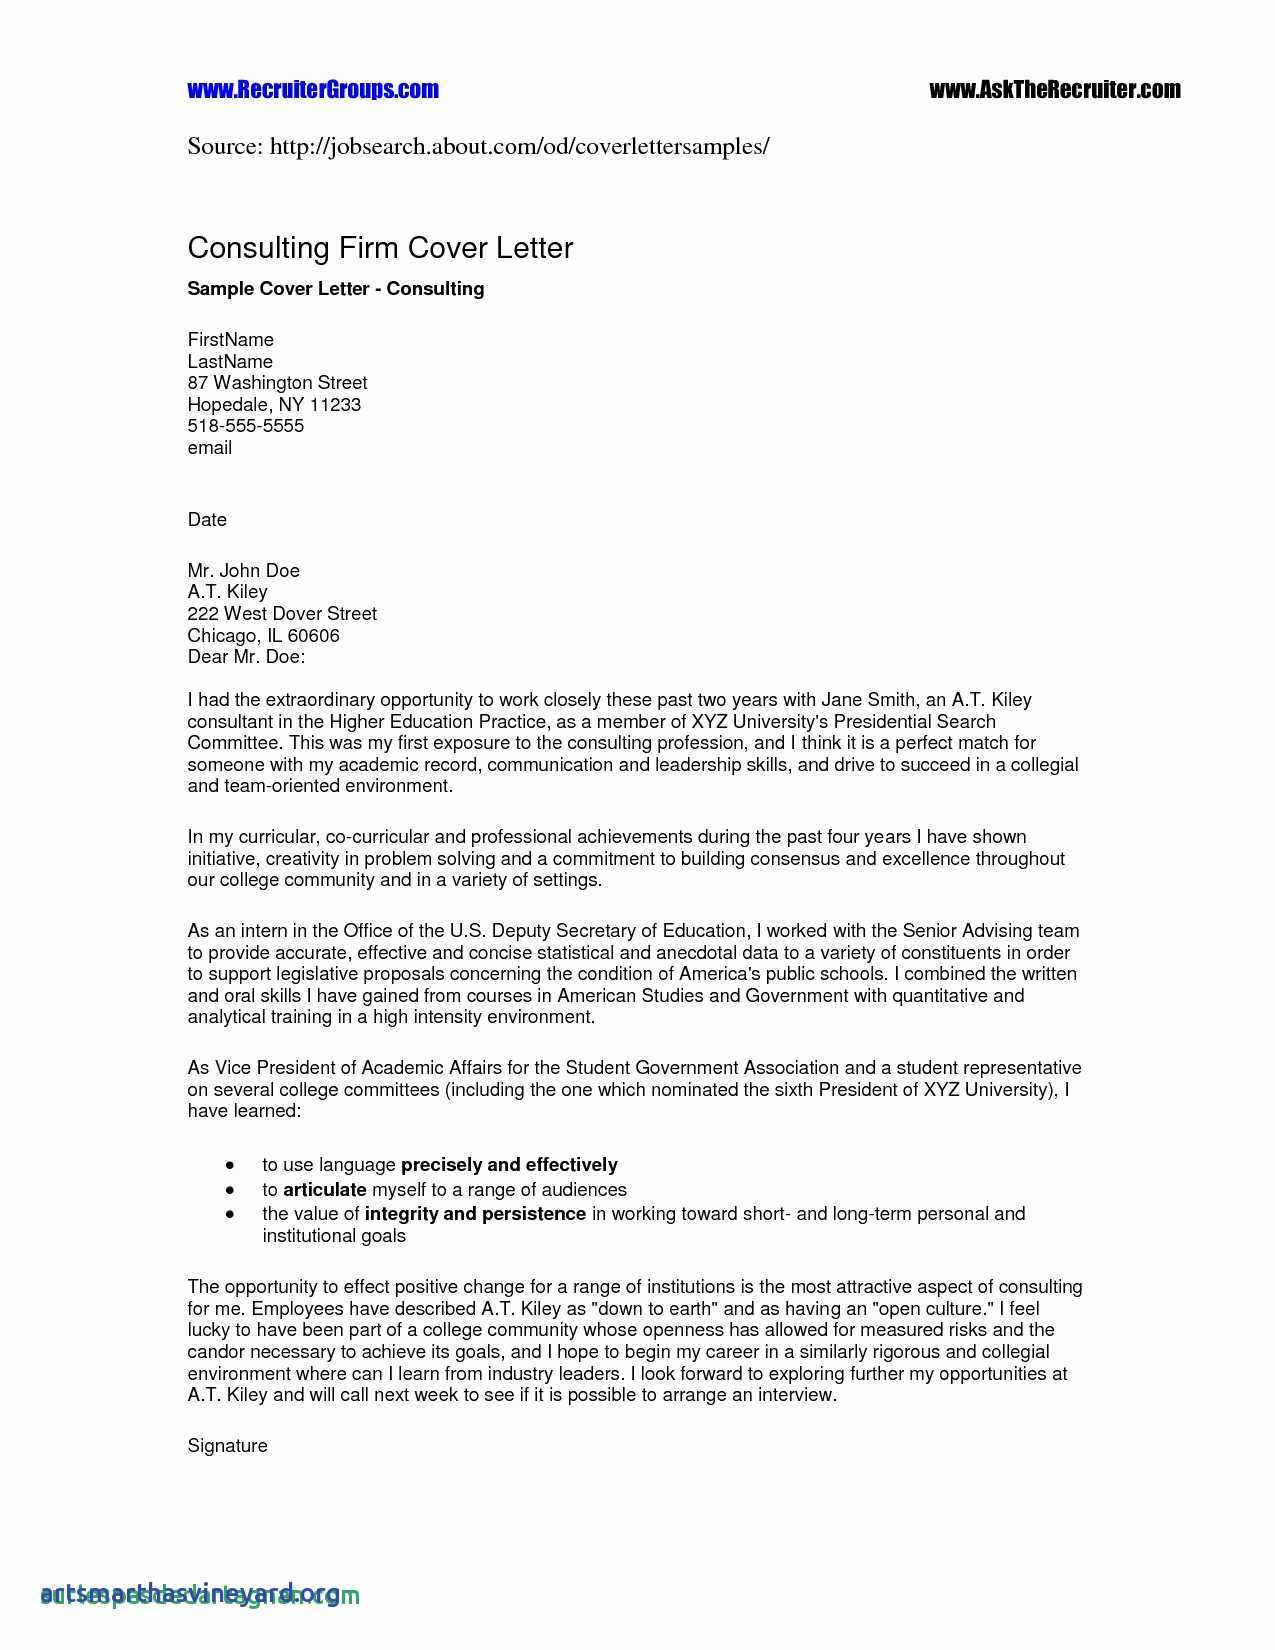 Mortgage Gift Letter Template - Sample Gift Letter for Mortgage New Mortgage Gift Letter Template 21